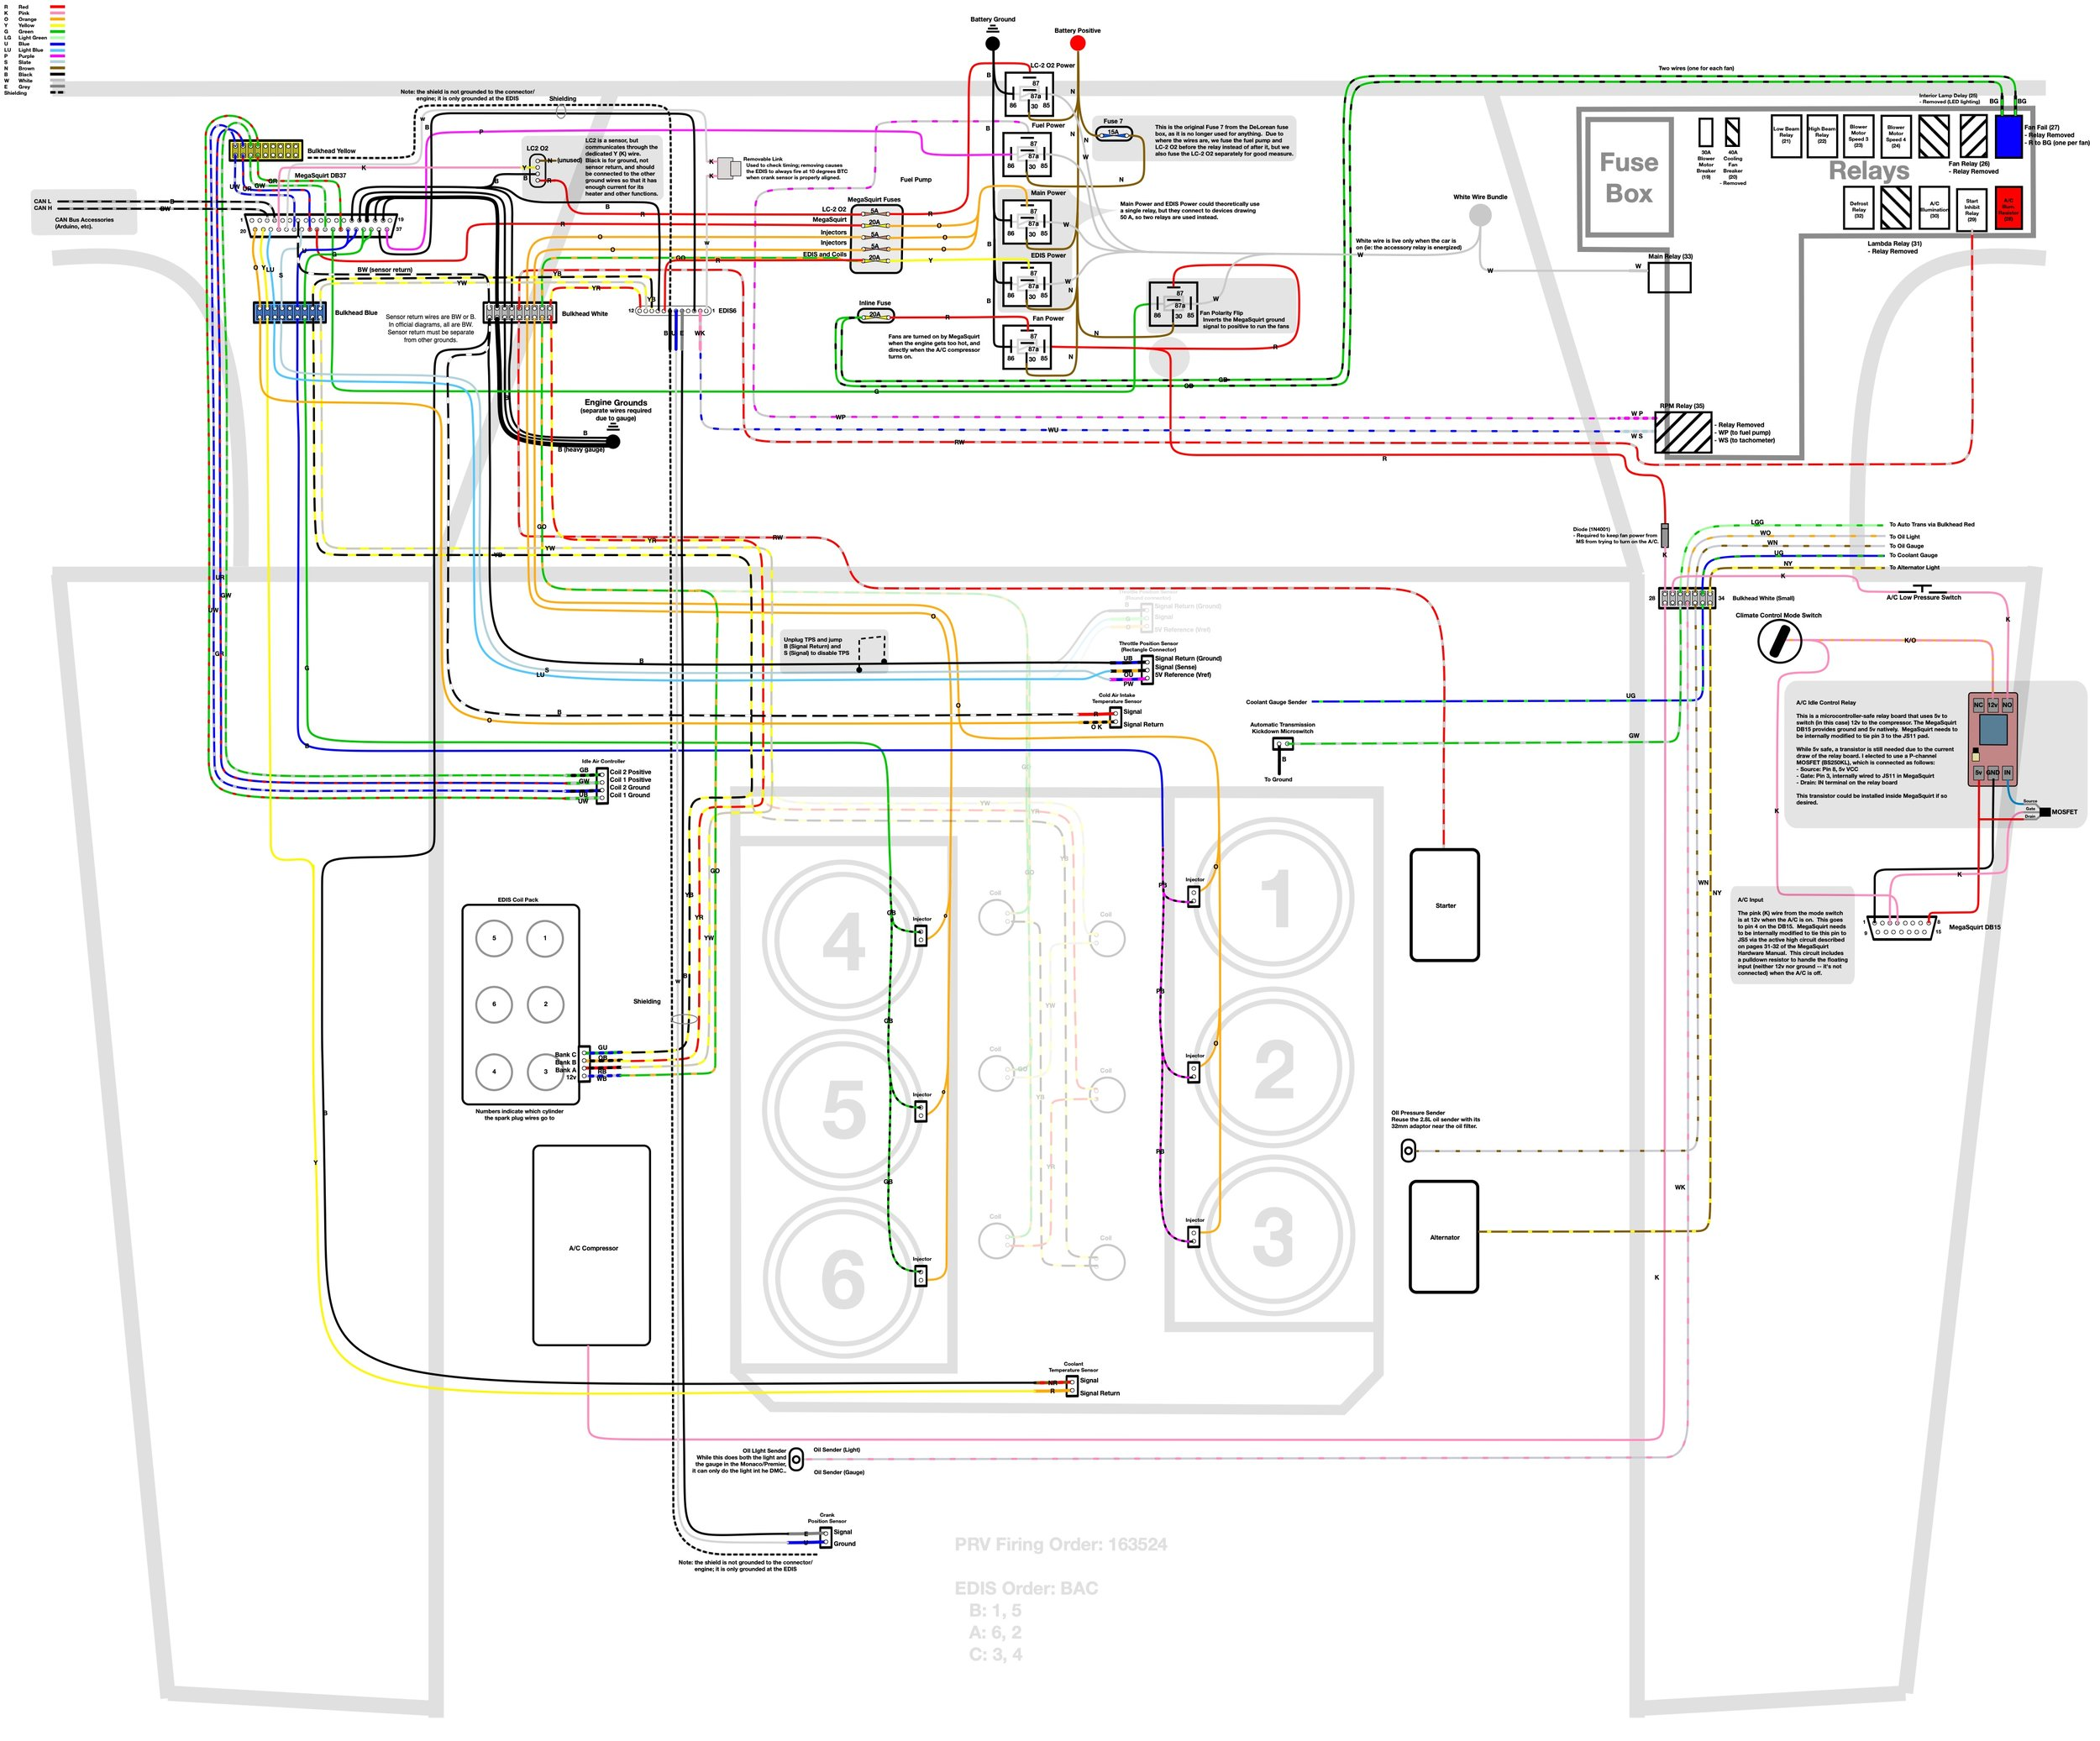 DeLorean+EFI+Wiring?format=1500w wiring, installing the new harness and fuel injector refurbishing delorean fuse box diagram at fashall.co